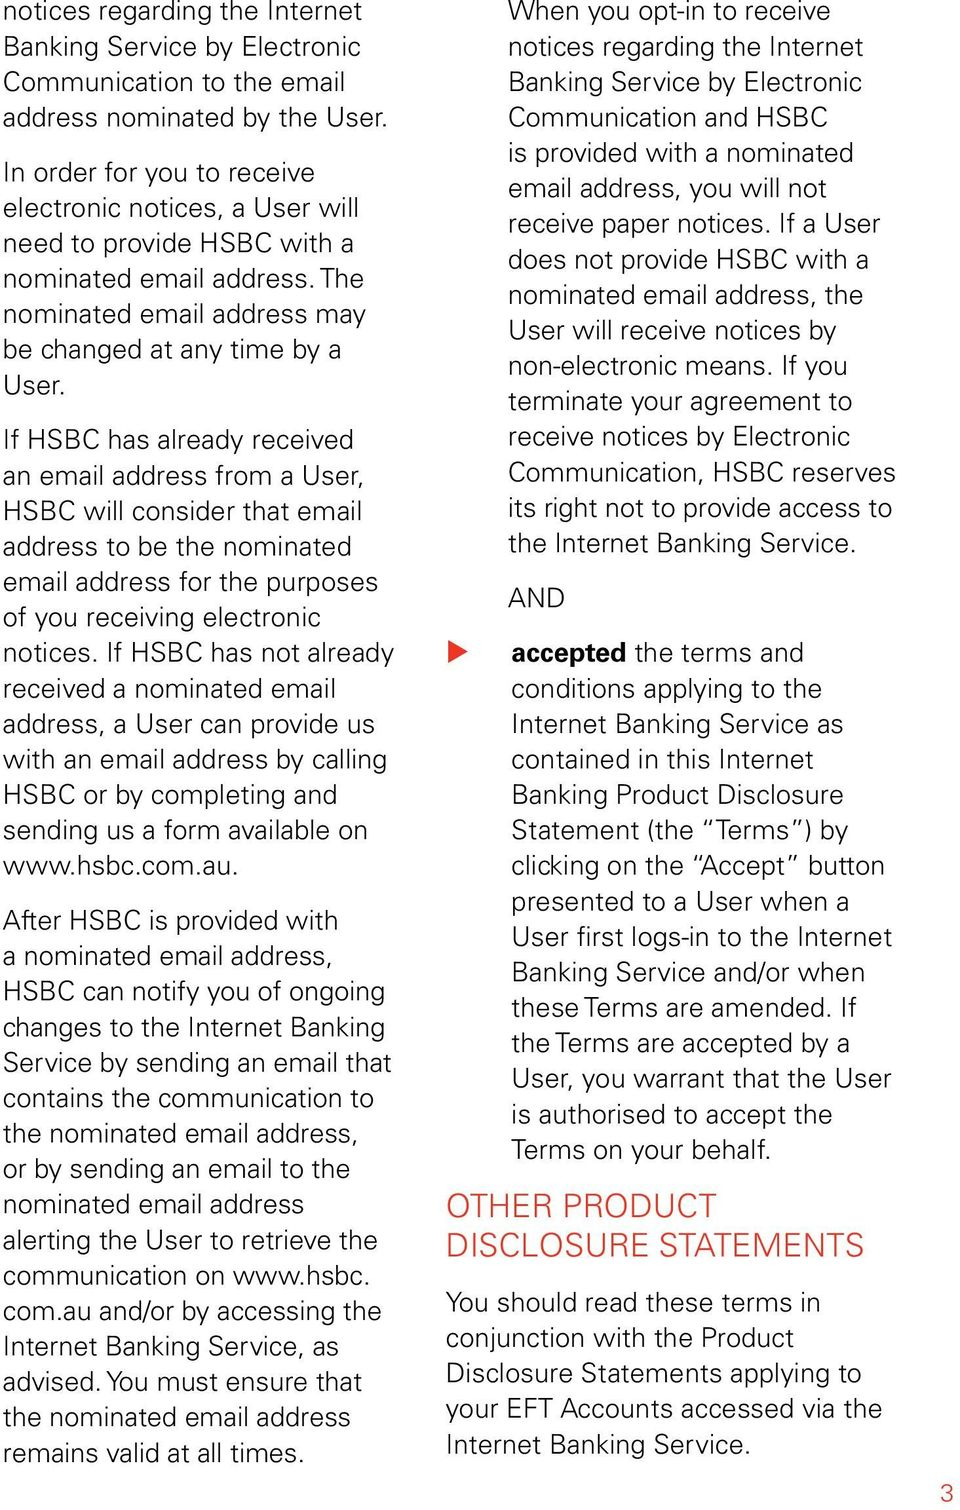 If HSBC has already received an email address from a User, HSBC will consider that email address to be the nominated email address for the prposes of yo receiving electronic notices.